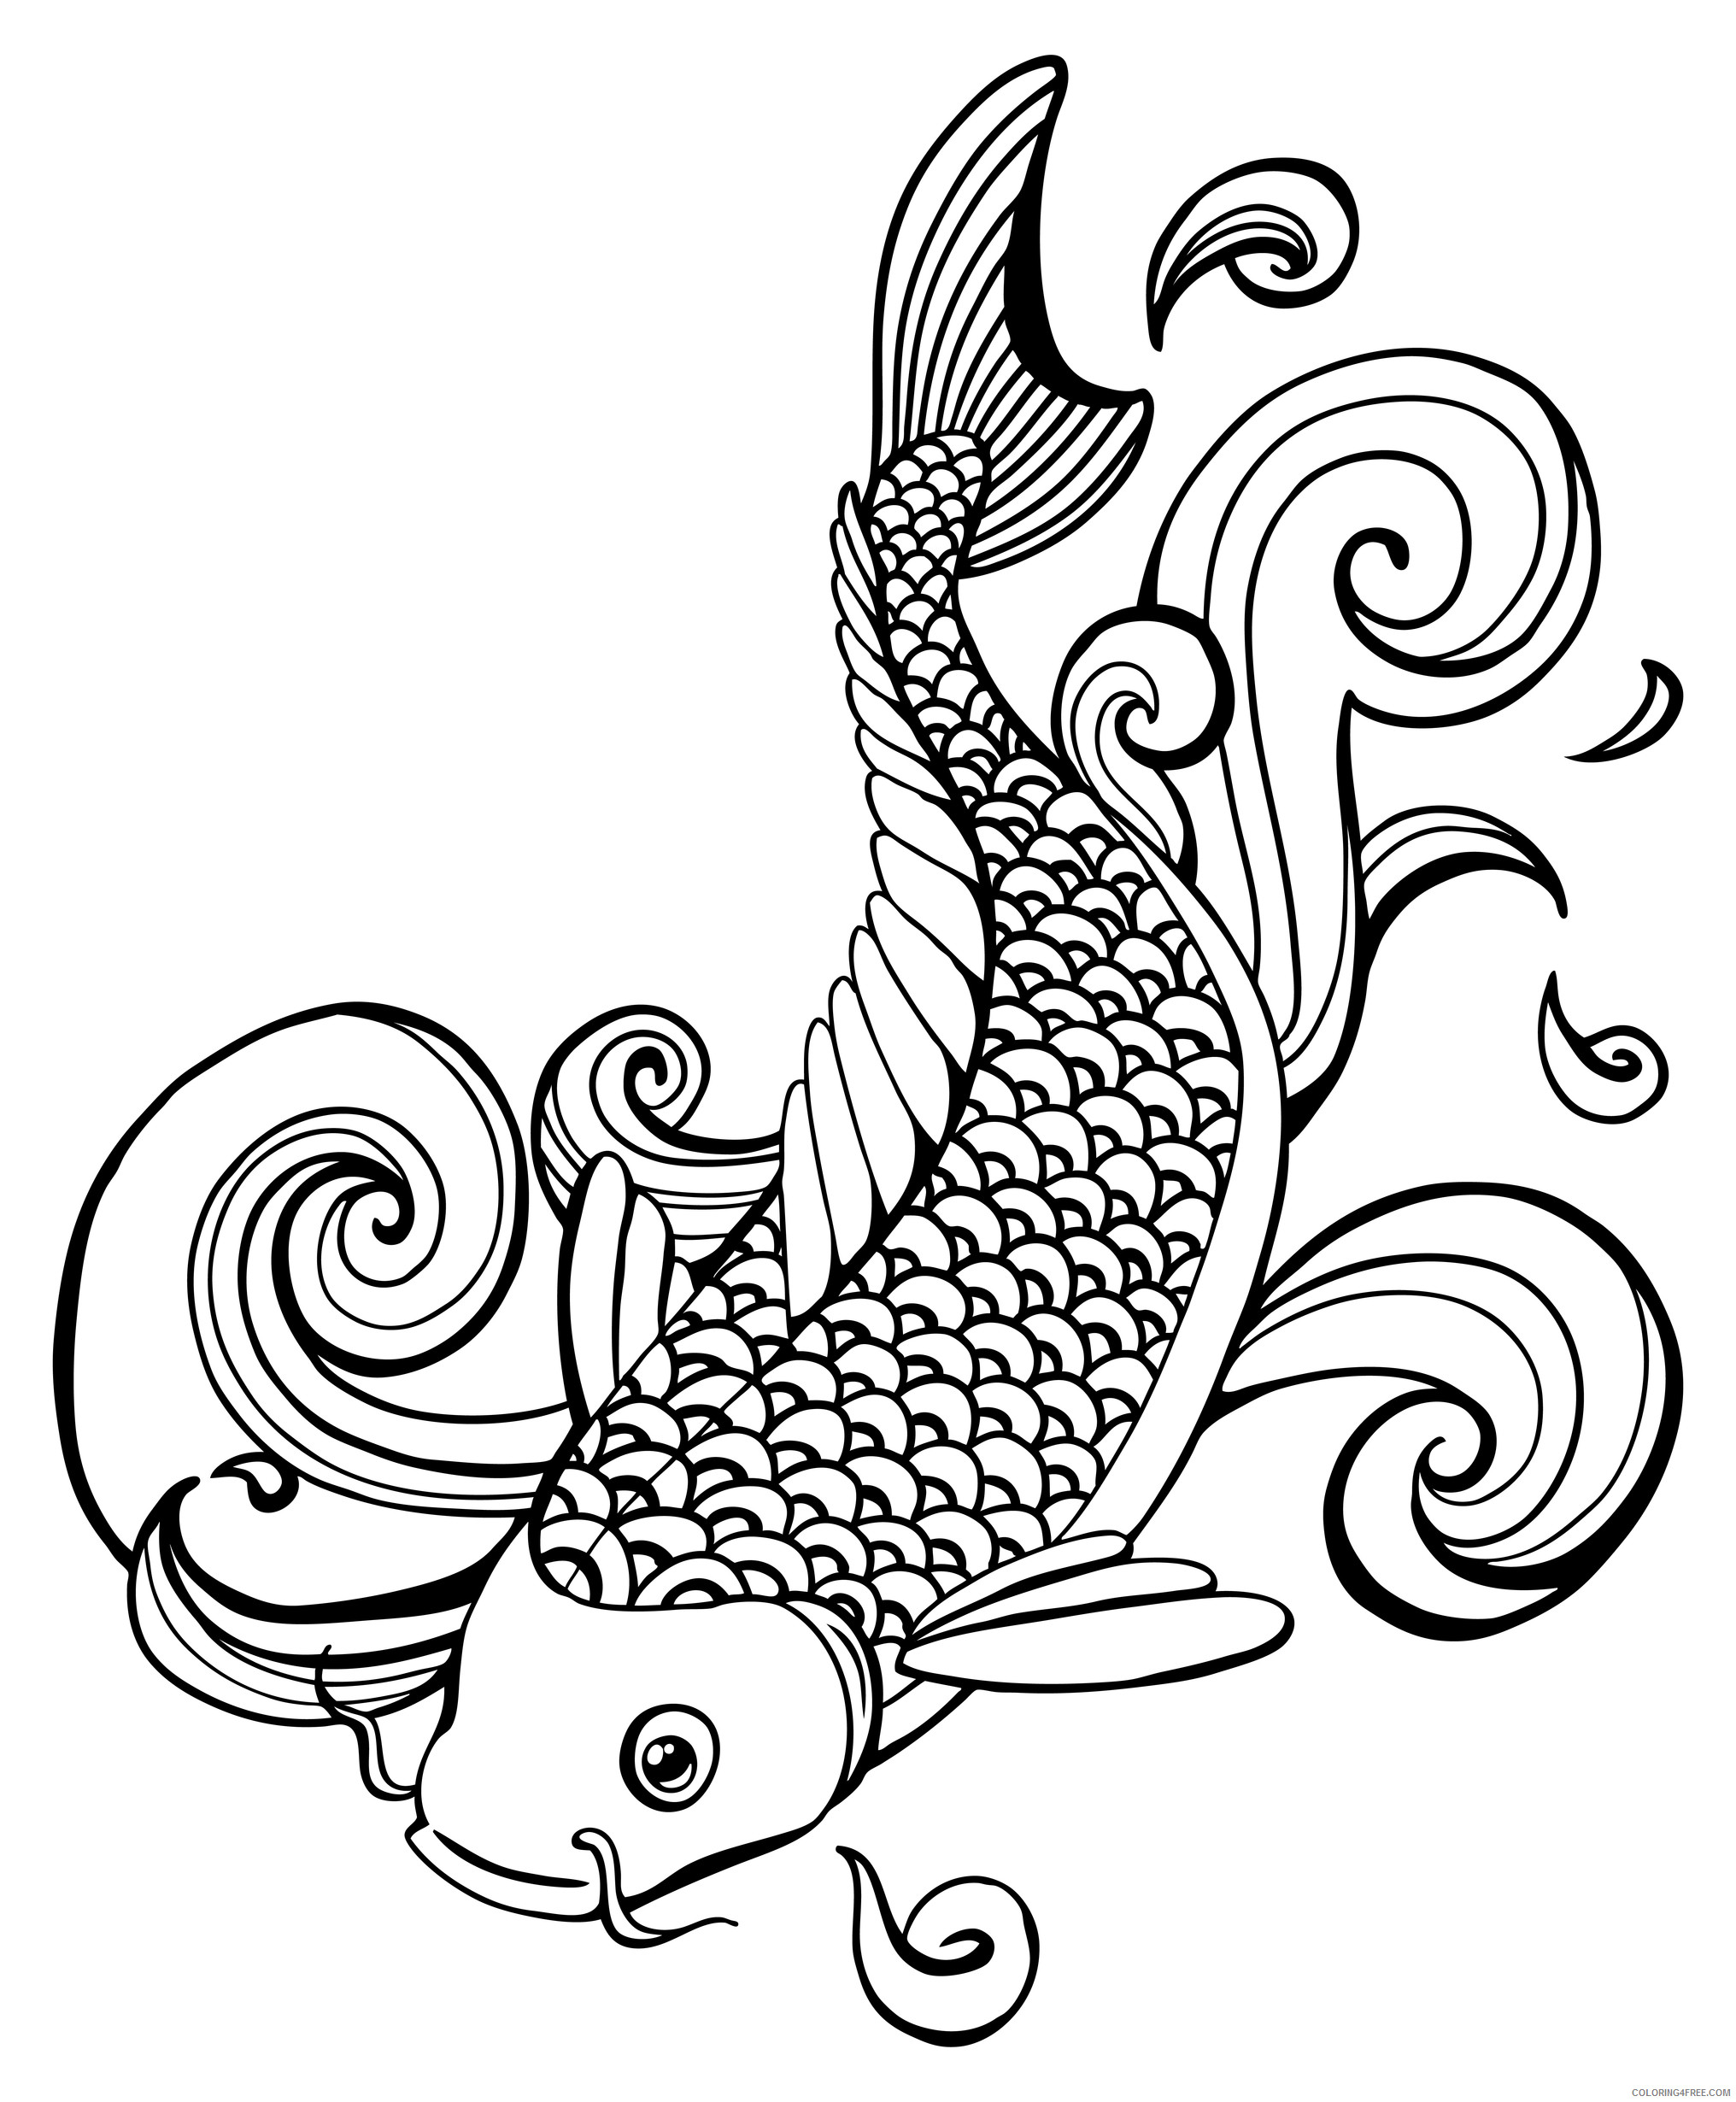 Coloring Pages Fish Photo top 92 Fishing Coloring Pages Free ... | 2460x2032